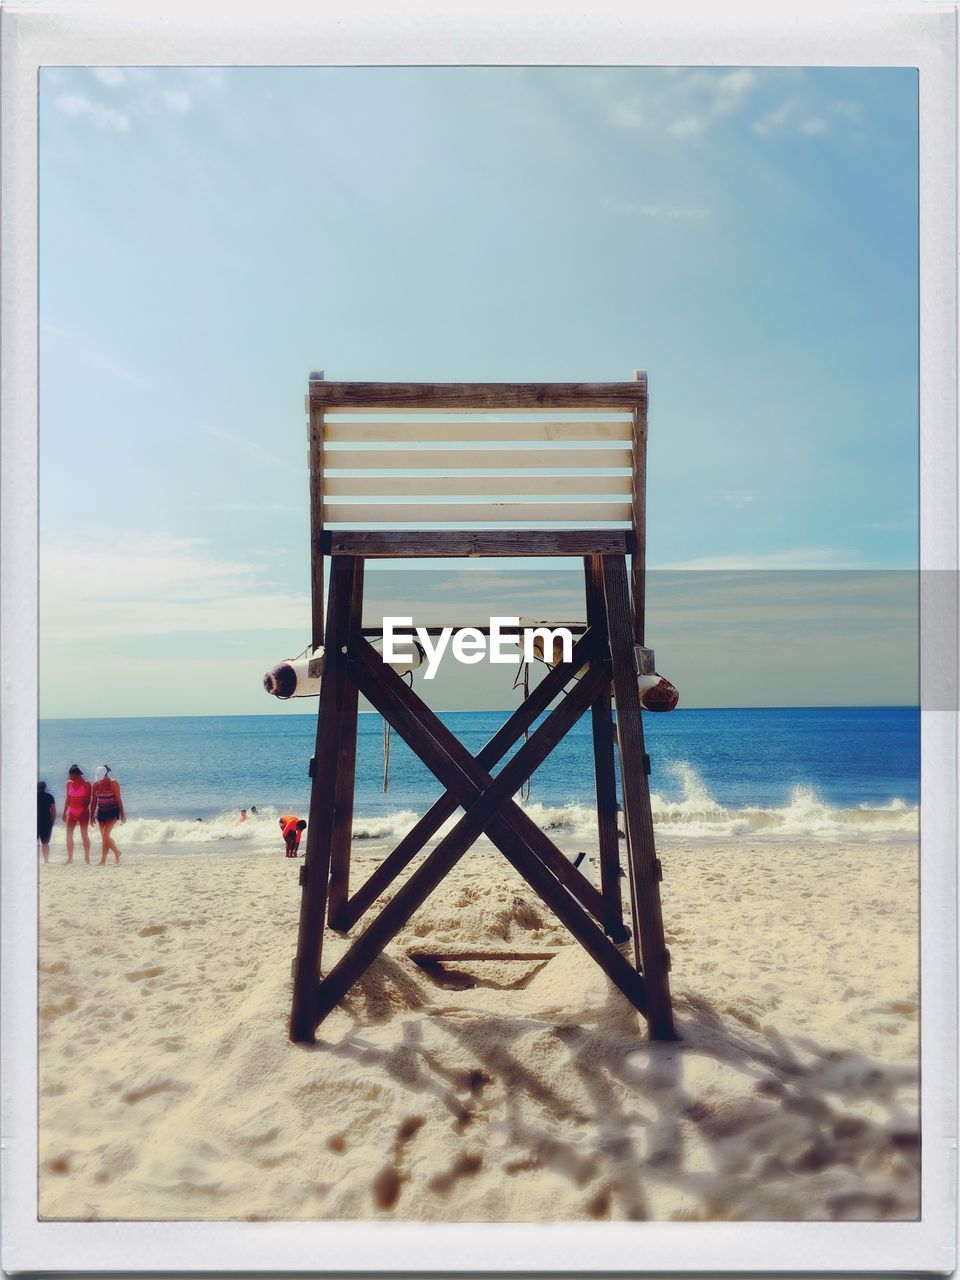 beach, sand, sea, horizon over water, sky, water, tranquil scene, scenics, rear view, nature, day, lifeguard hut, vacations, beauty in nature, lifeguard, outdoors, no people